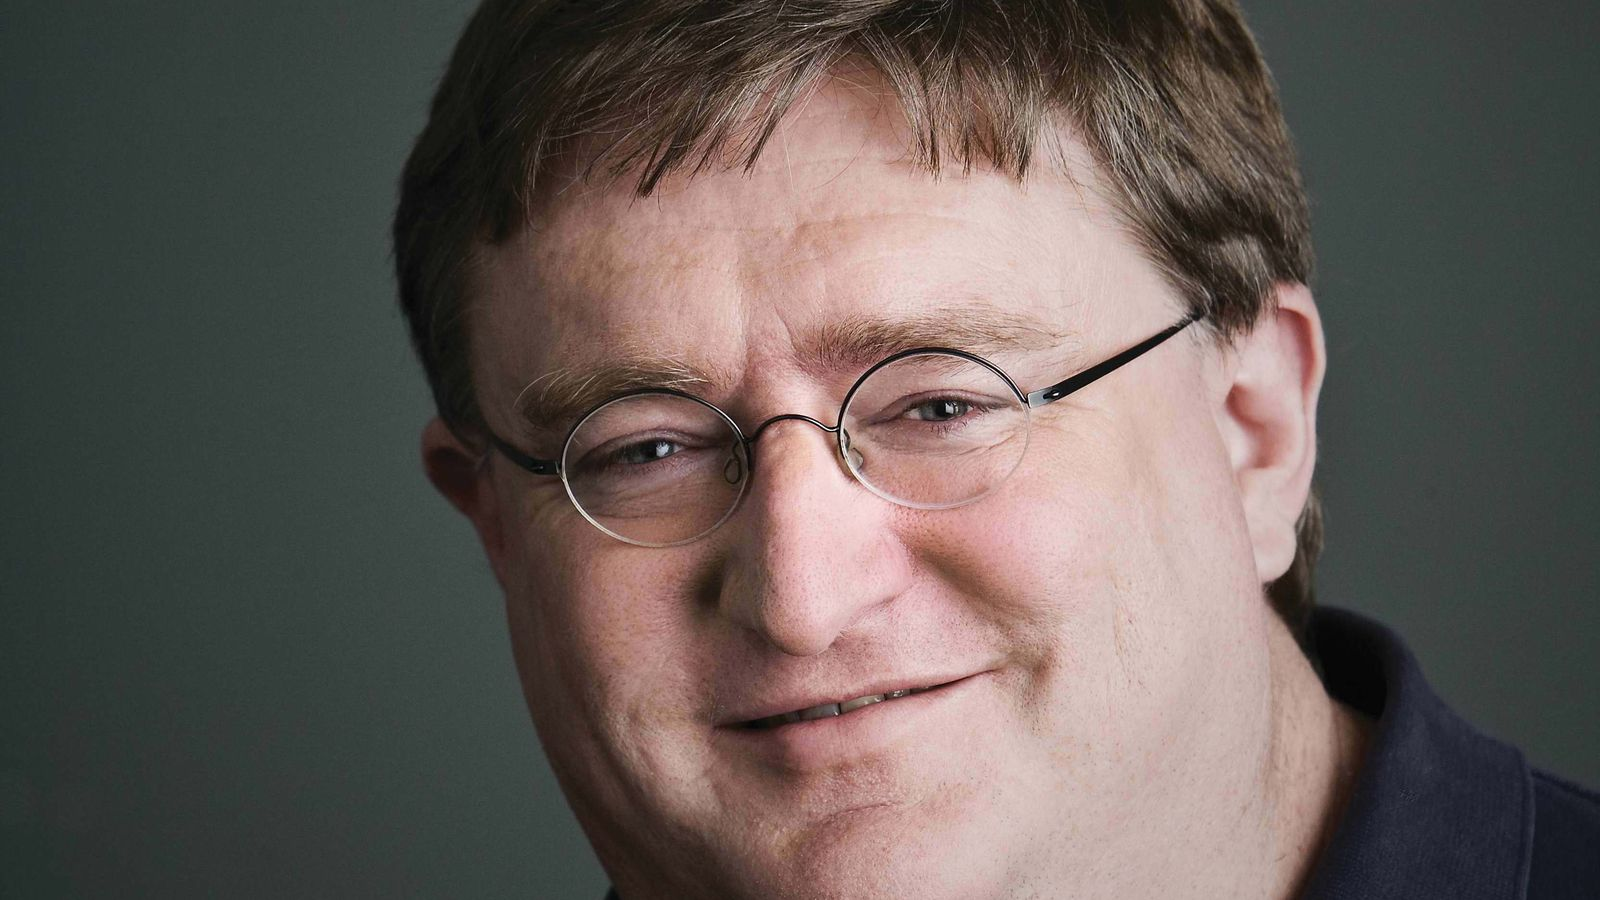 Gabe Newell is doing an AMA today so you can ask him about Half-Life 3